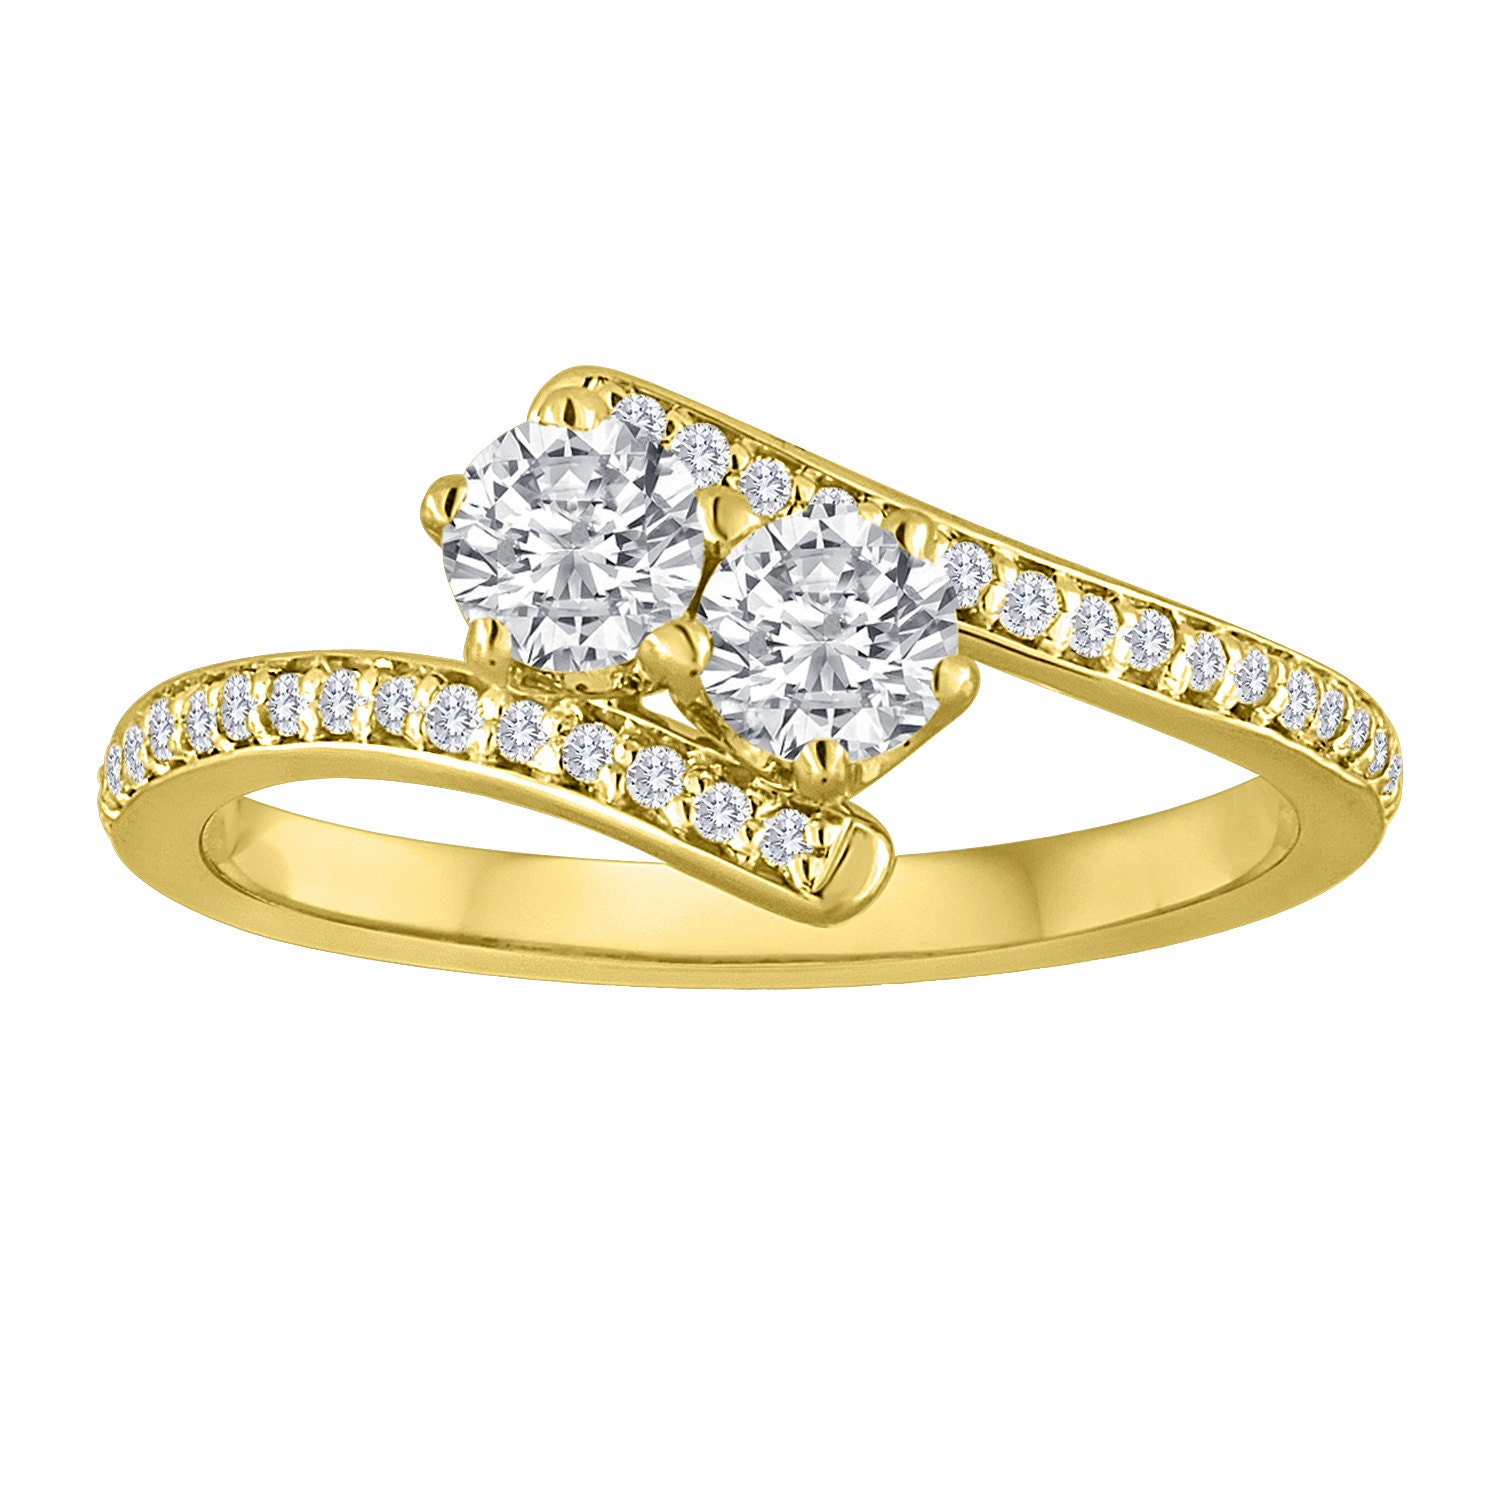 The Two Stone Engagement Anniversary Diamond Ring By